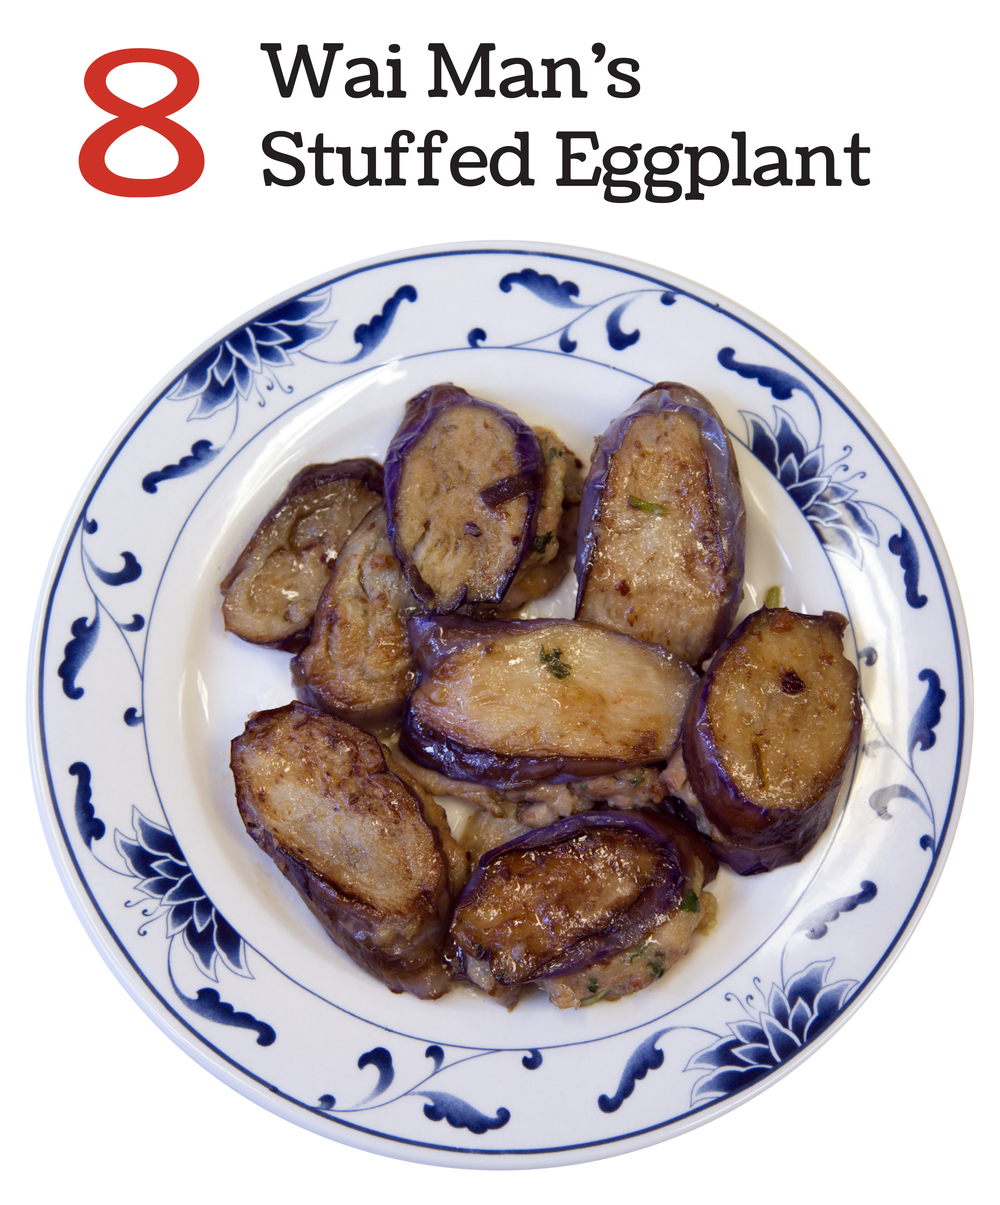 8 Wai Man's Stuffed Eggplant